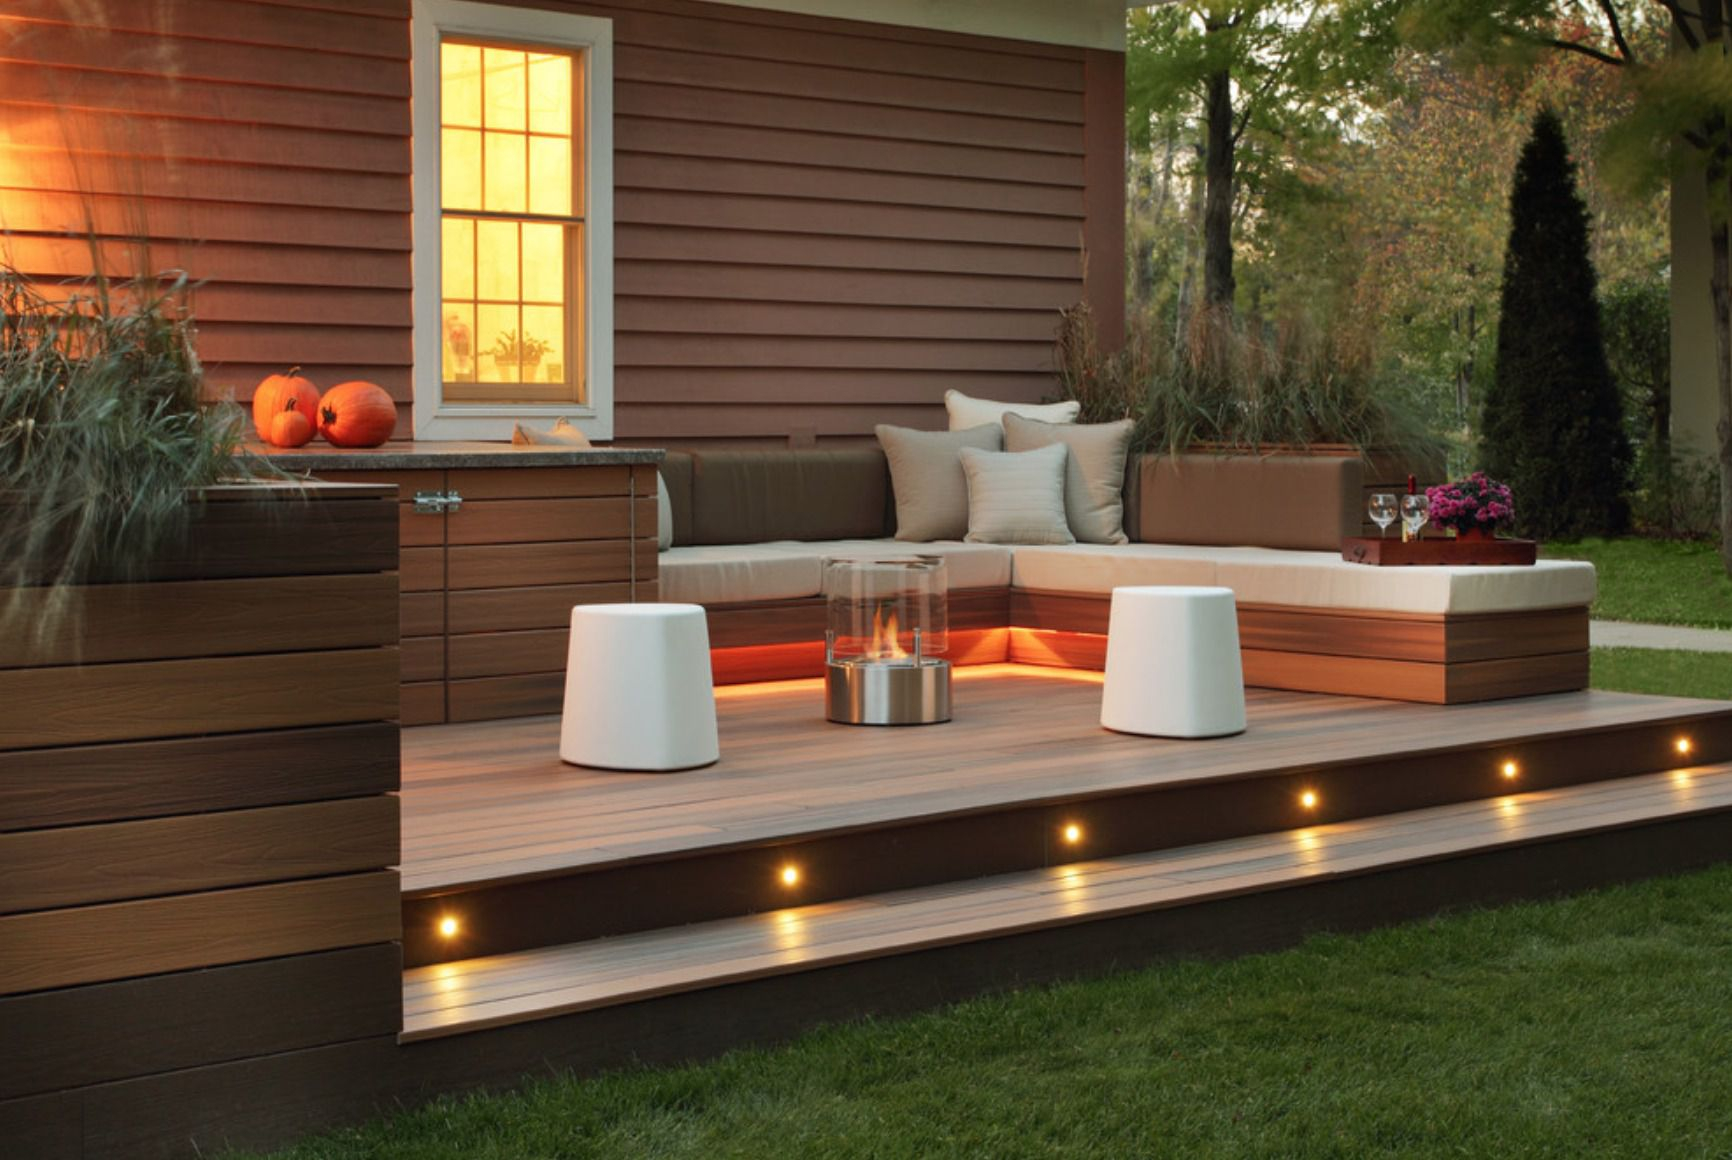 15 Deck Lighting Ideas For Every Season intended for 14 Some of the Coolest Ways How to Craft Decorating Backyard With Lights